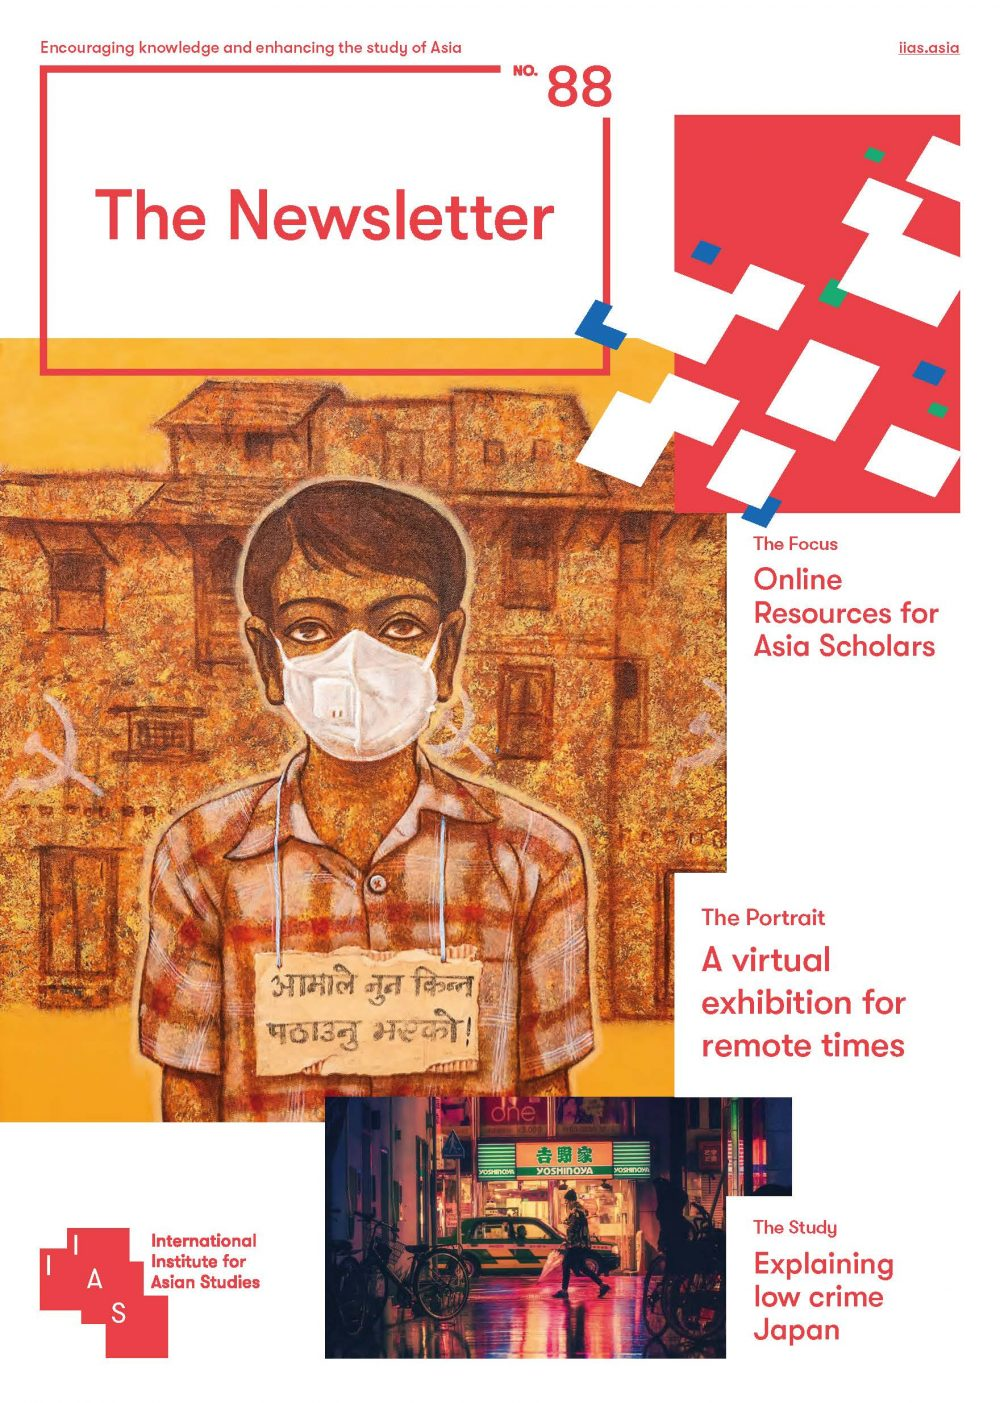 IIAS 〈The Newsletter〉 Vol. 88 – News from Northeast Asia